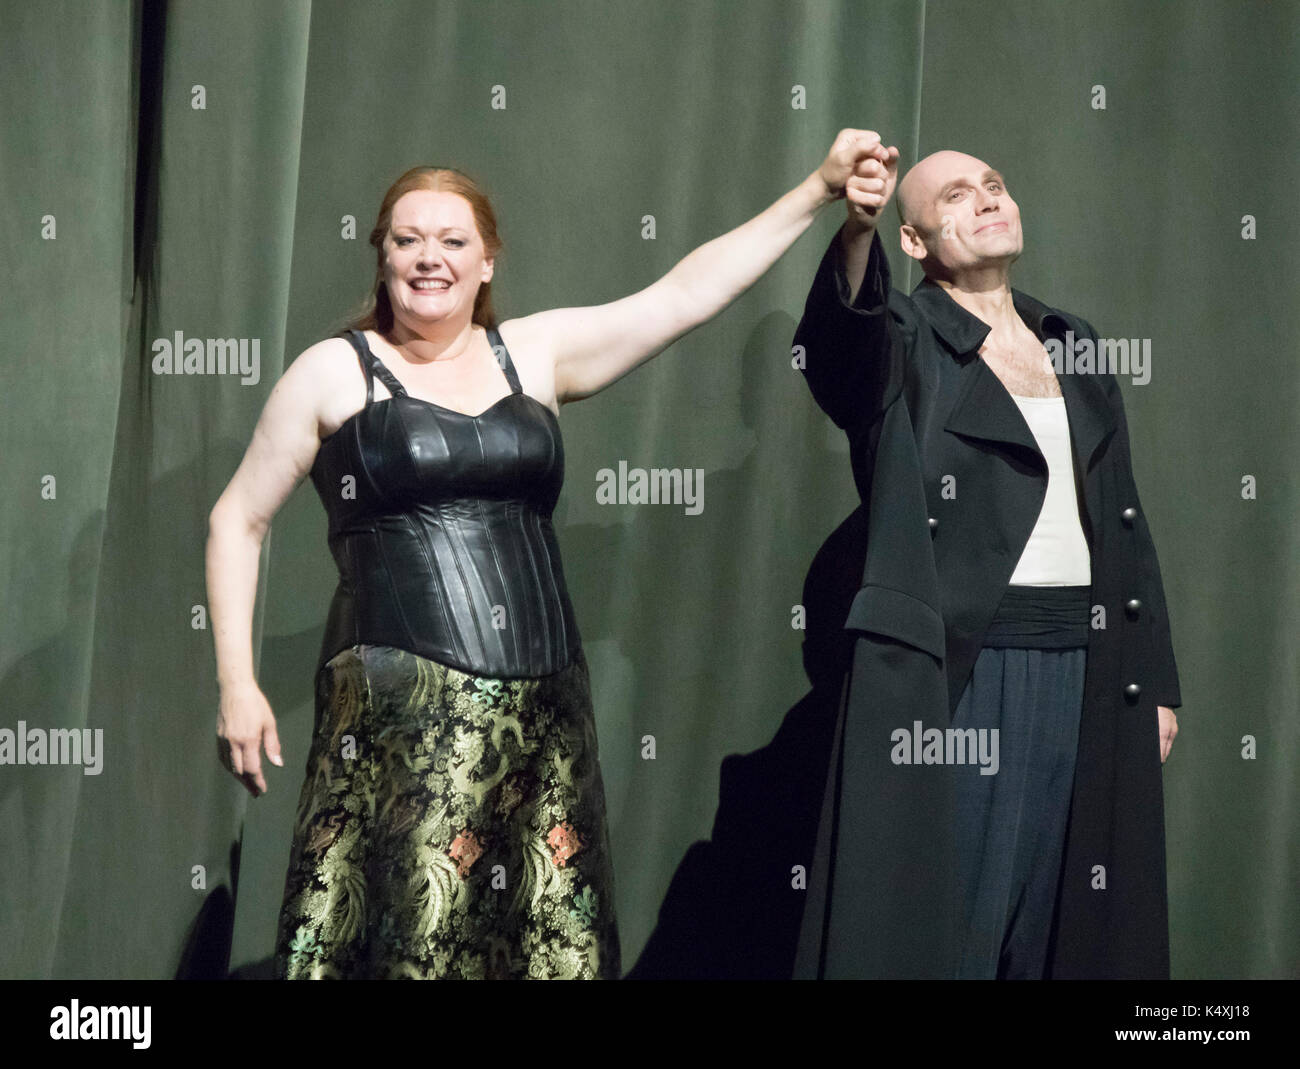 Catherine Foster as Brünnhilde and John Lundgren as Wotan taking a curtain call, Die Walkure, Bayreuth Opera Festival 2017, Bavaria, Germany - Stock Image